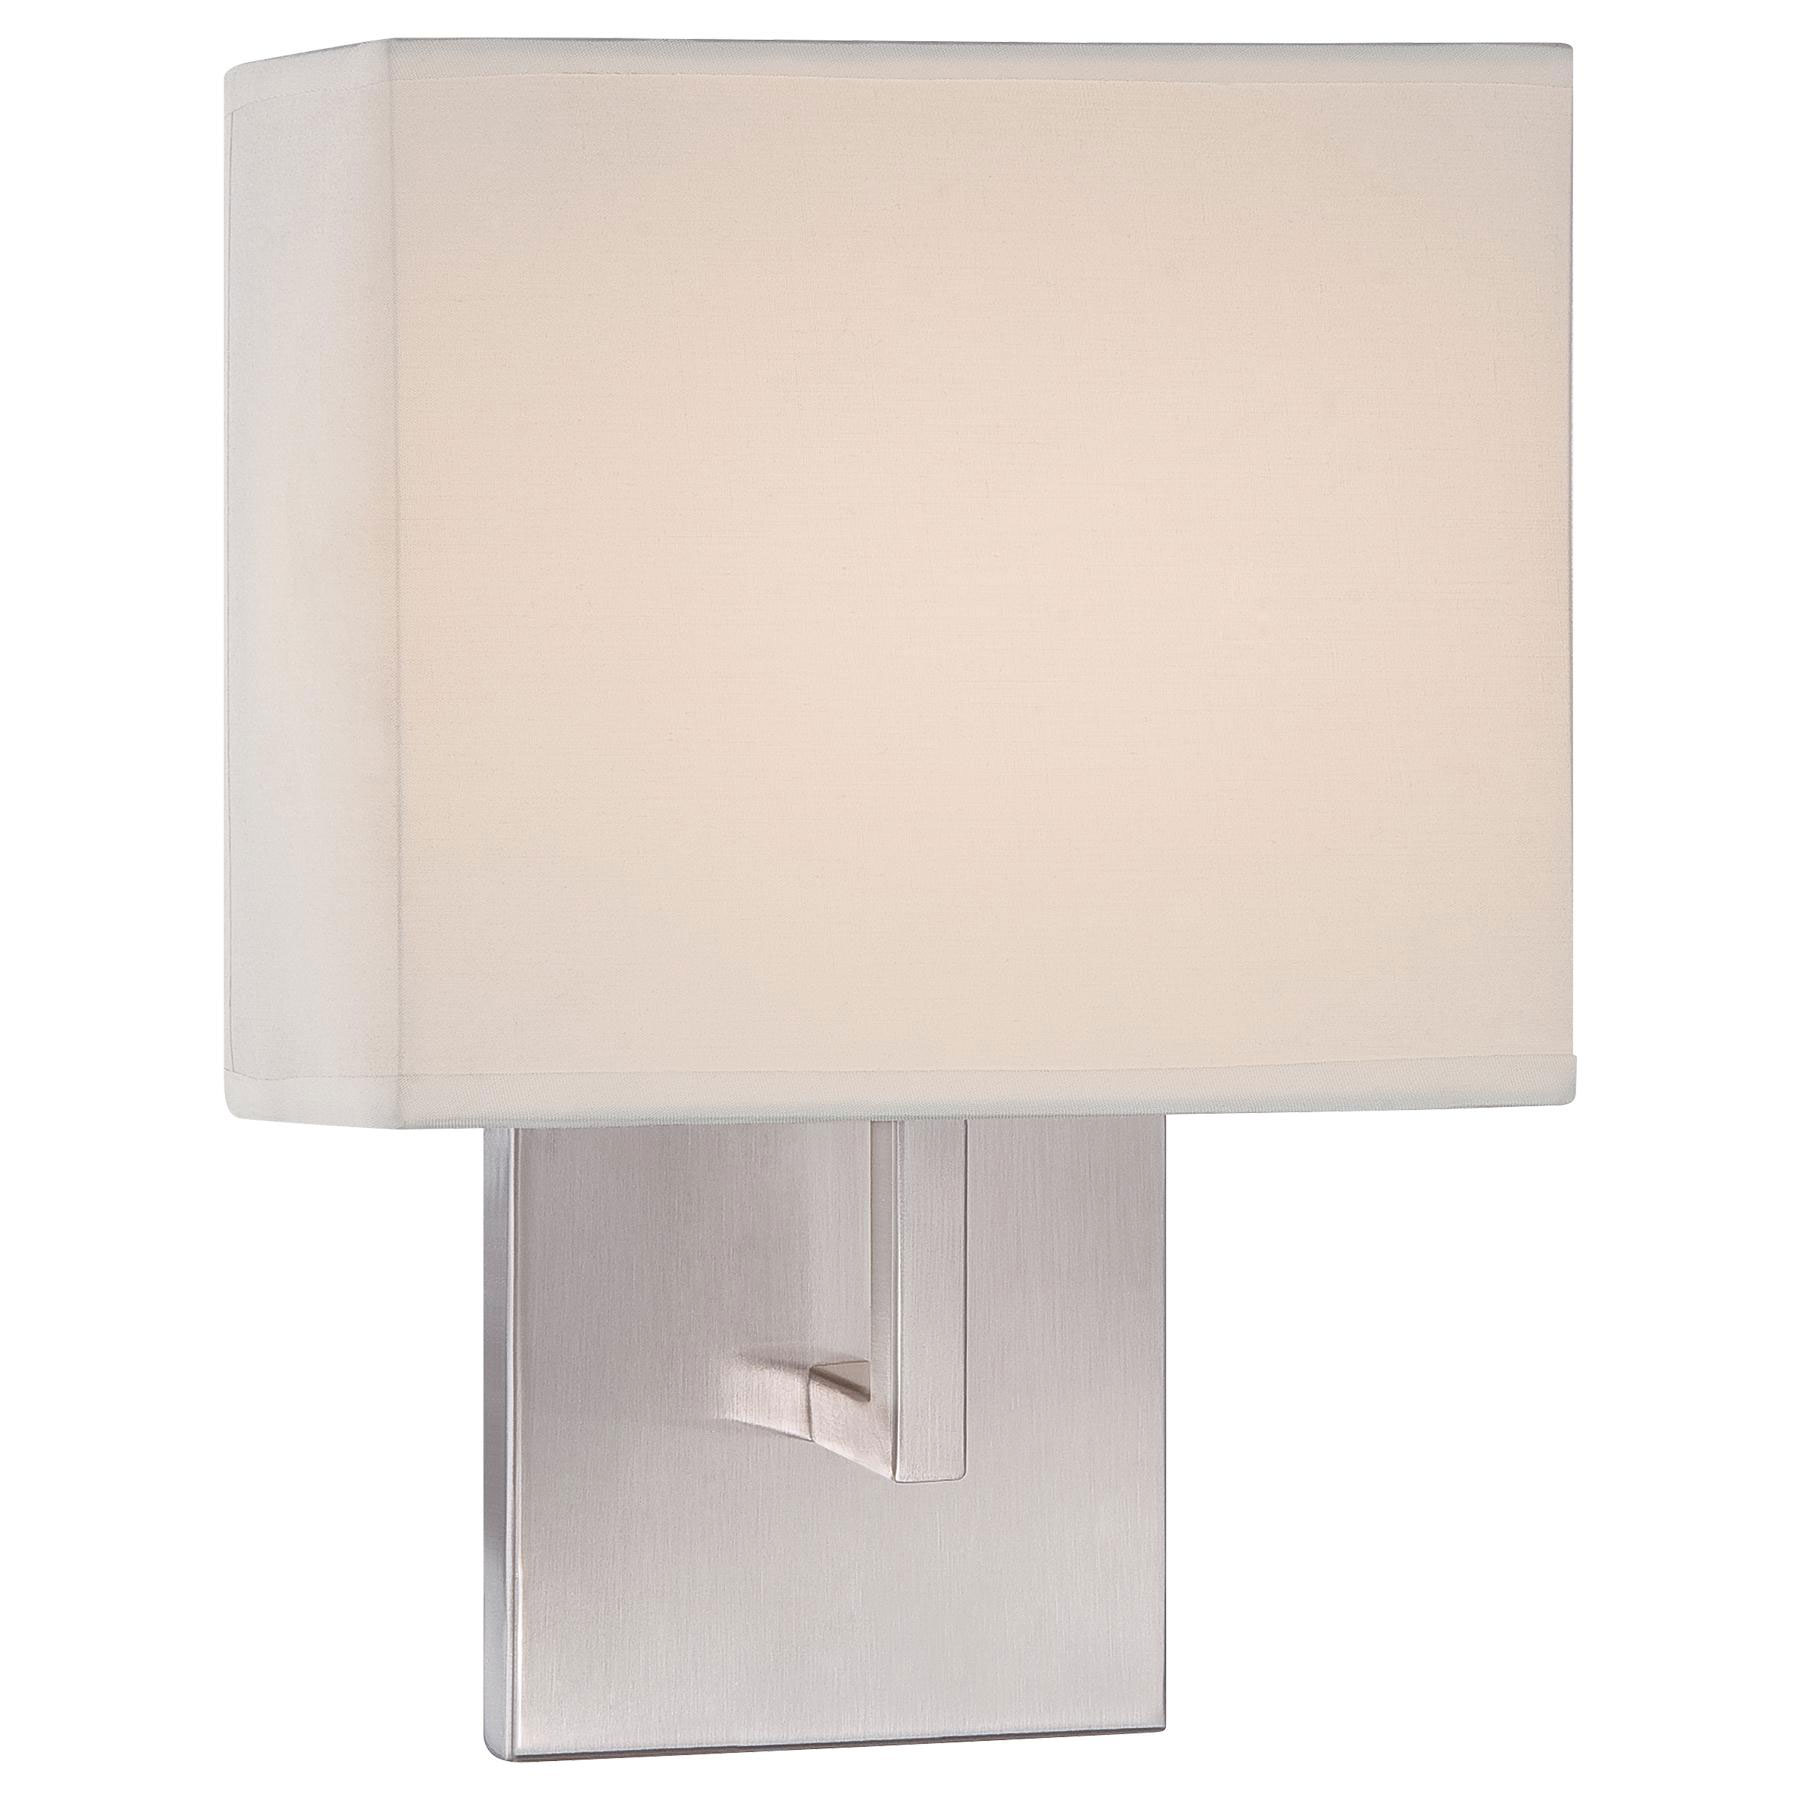 Klaffs Wall Sconces : P470 LED Wall Sconce by George Kovacs P470-084-L